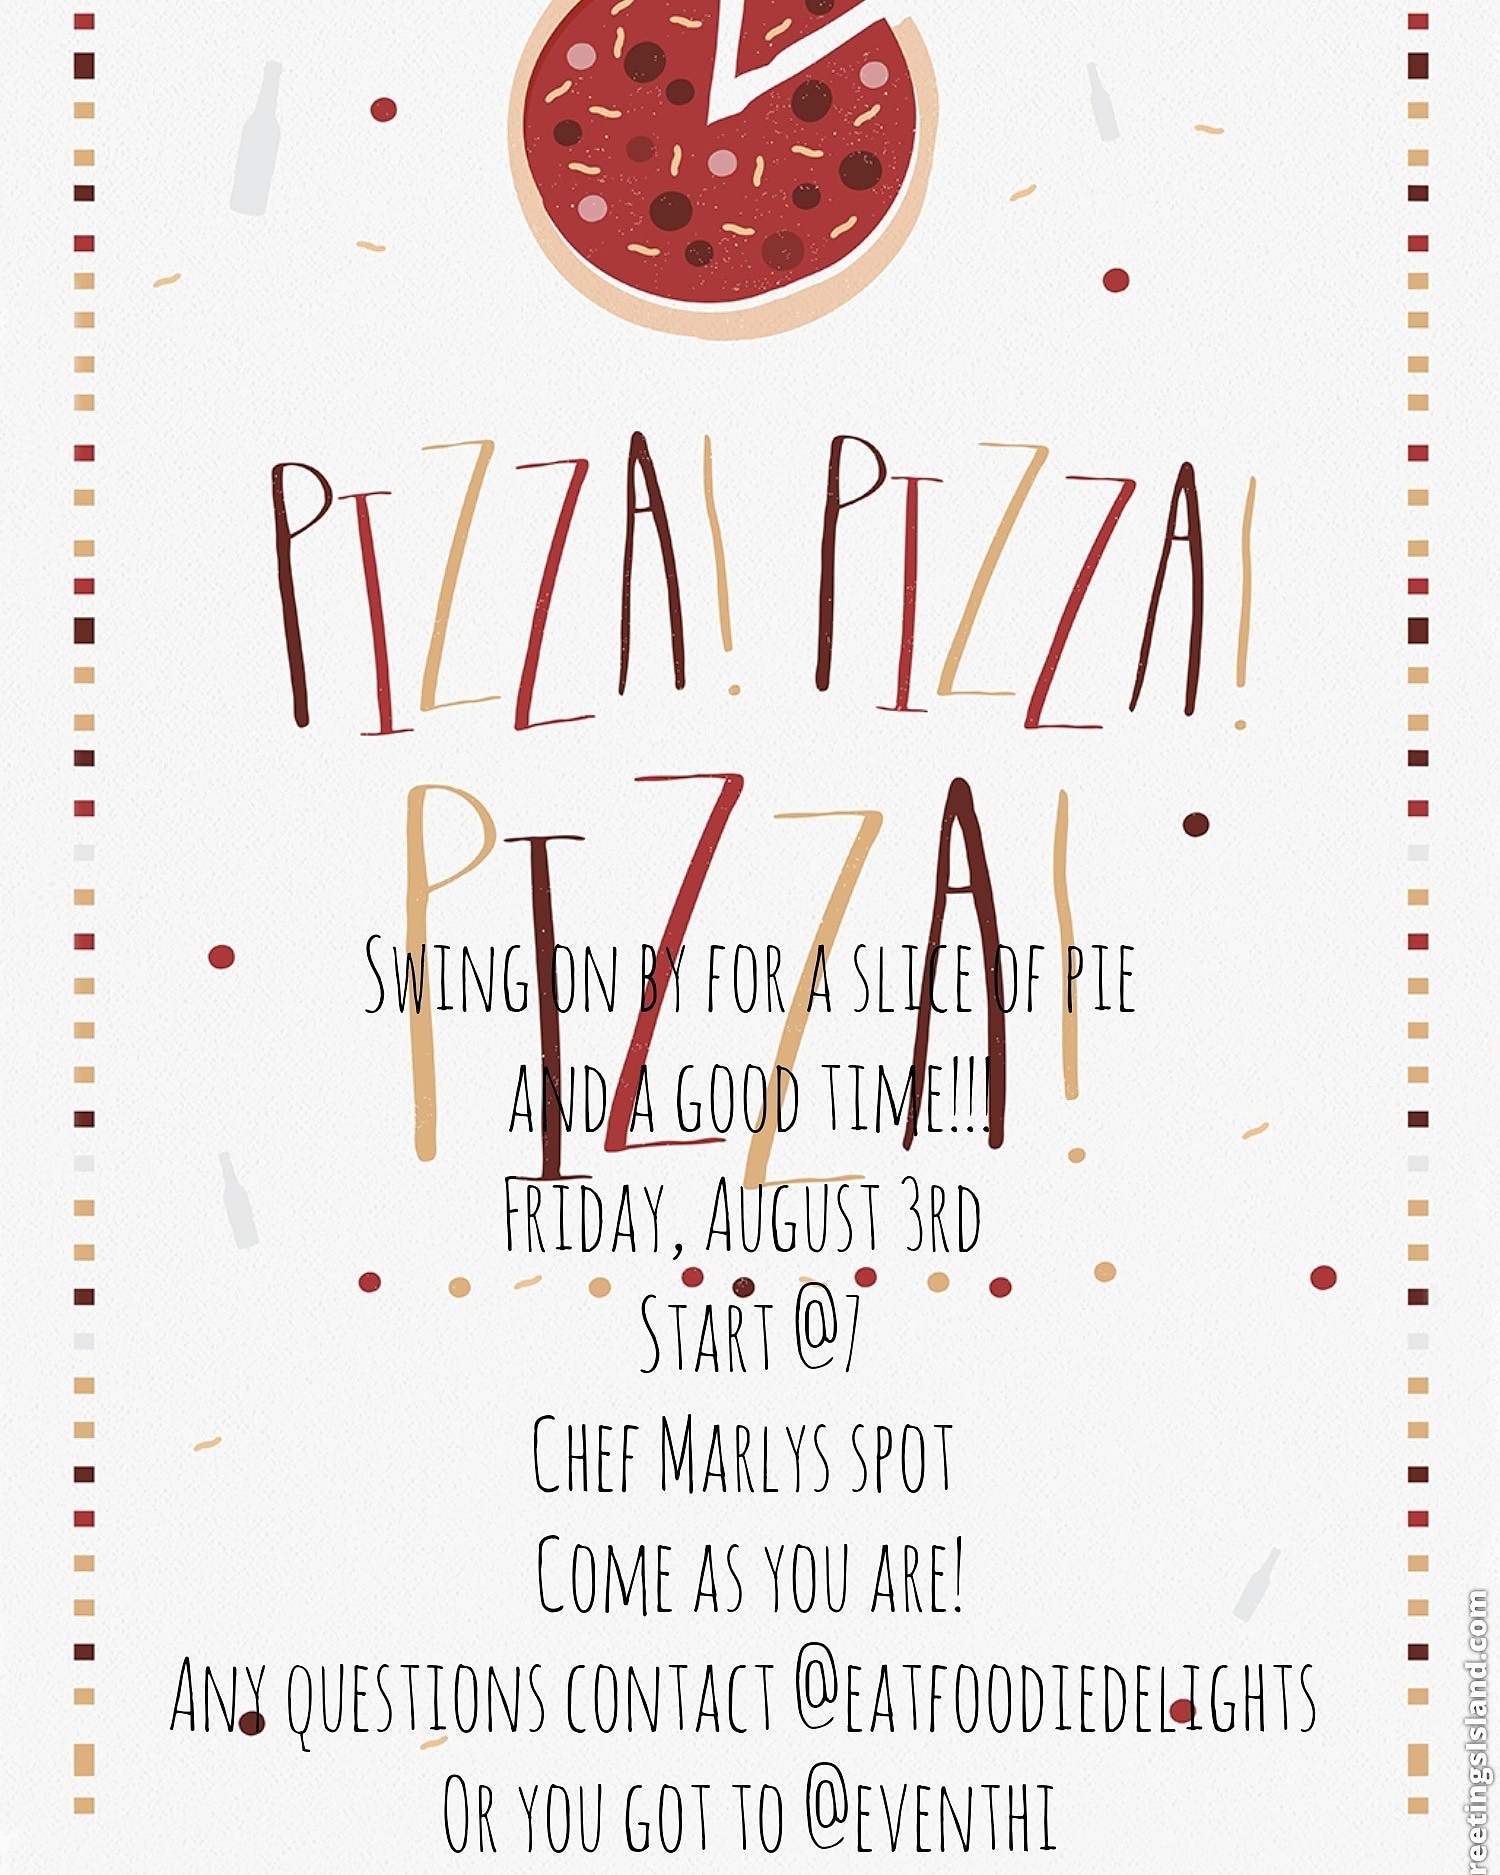 Pizza Night/Grown folks Friday